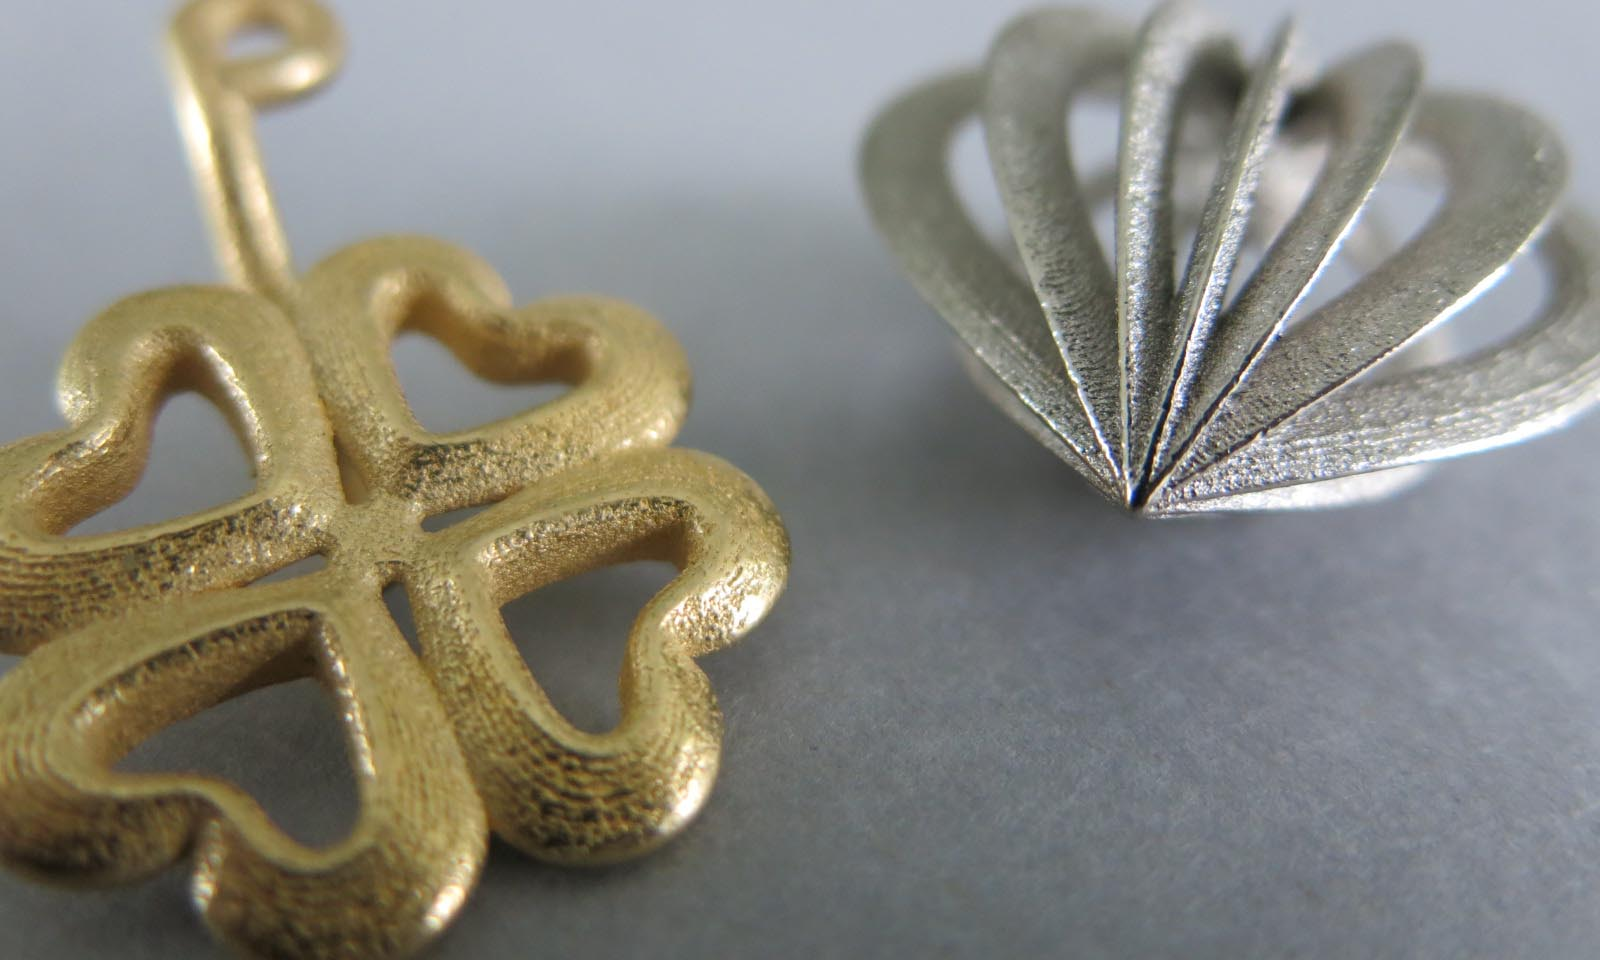 3D printed jewelry with Binder Jetting Stainless Steel